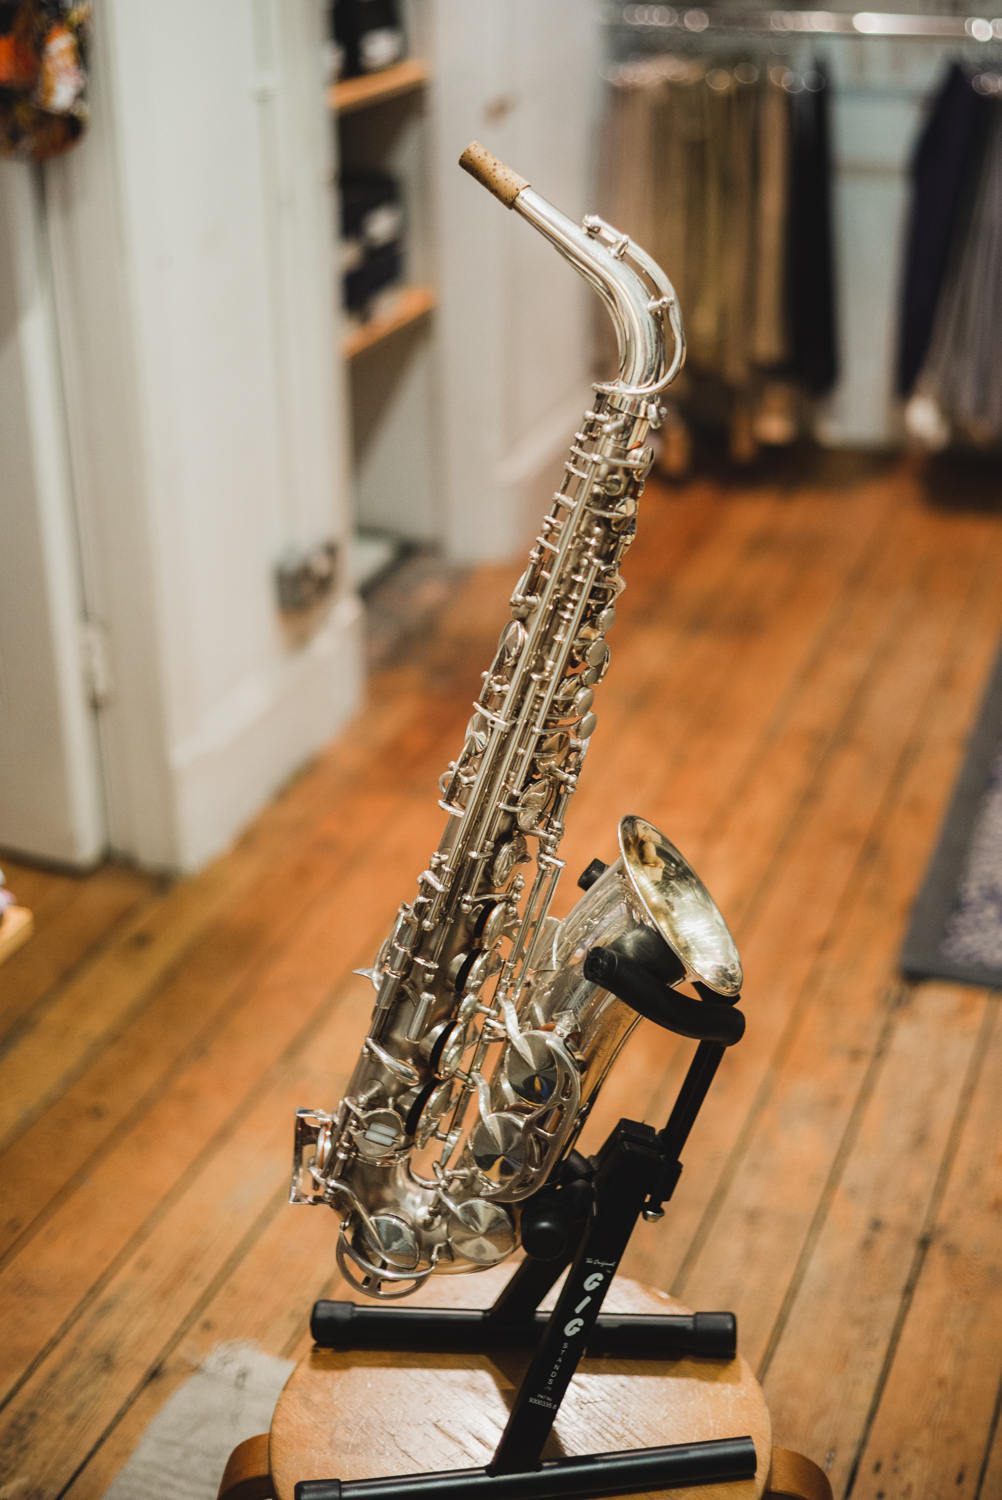 Beyond Hep: A Conversation With Saxophonist Thomas Kleyn of Howarth of London